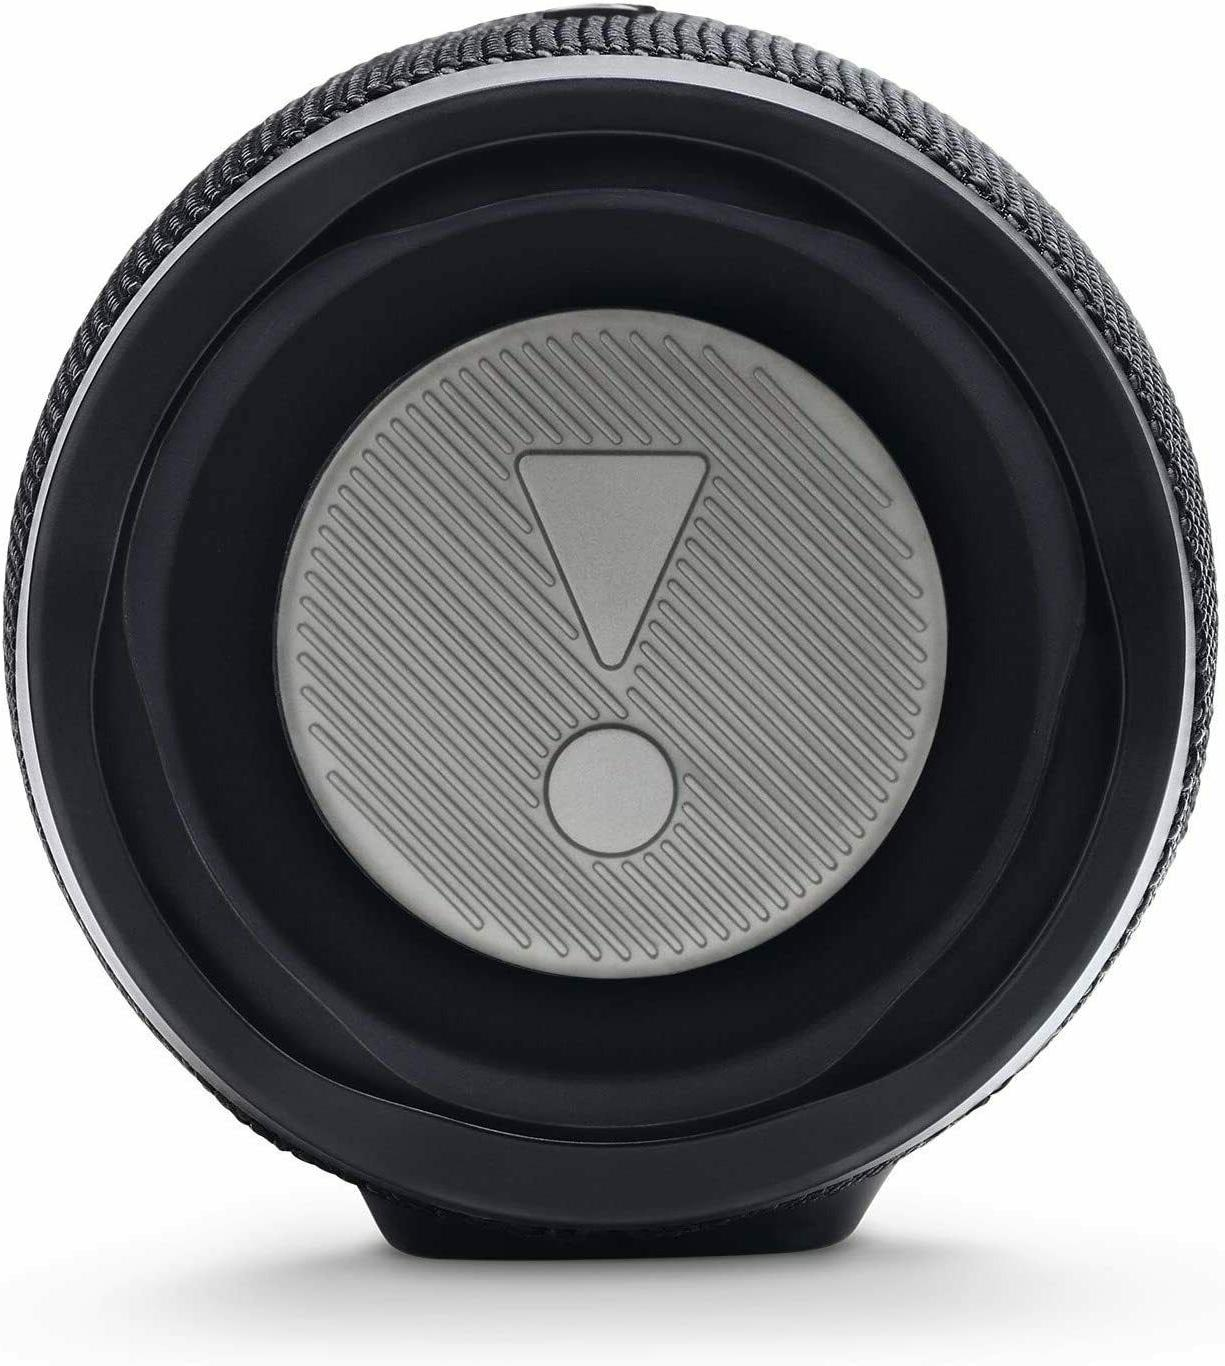 NEW! JBL Charge Speaker Black